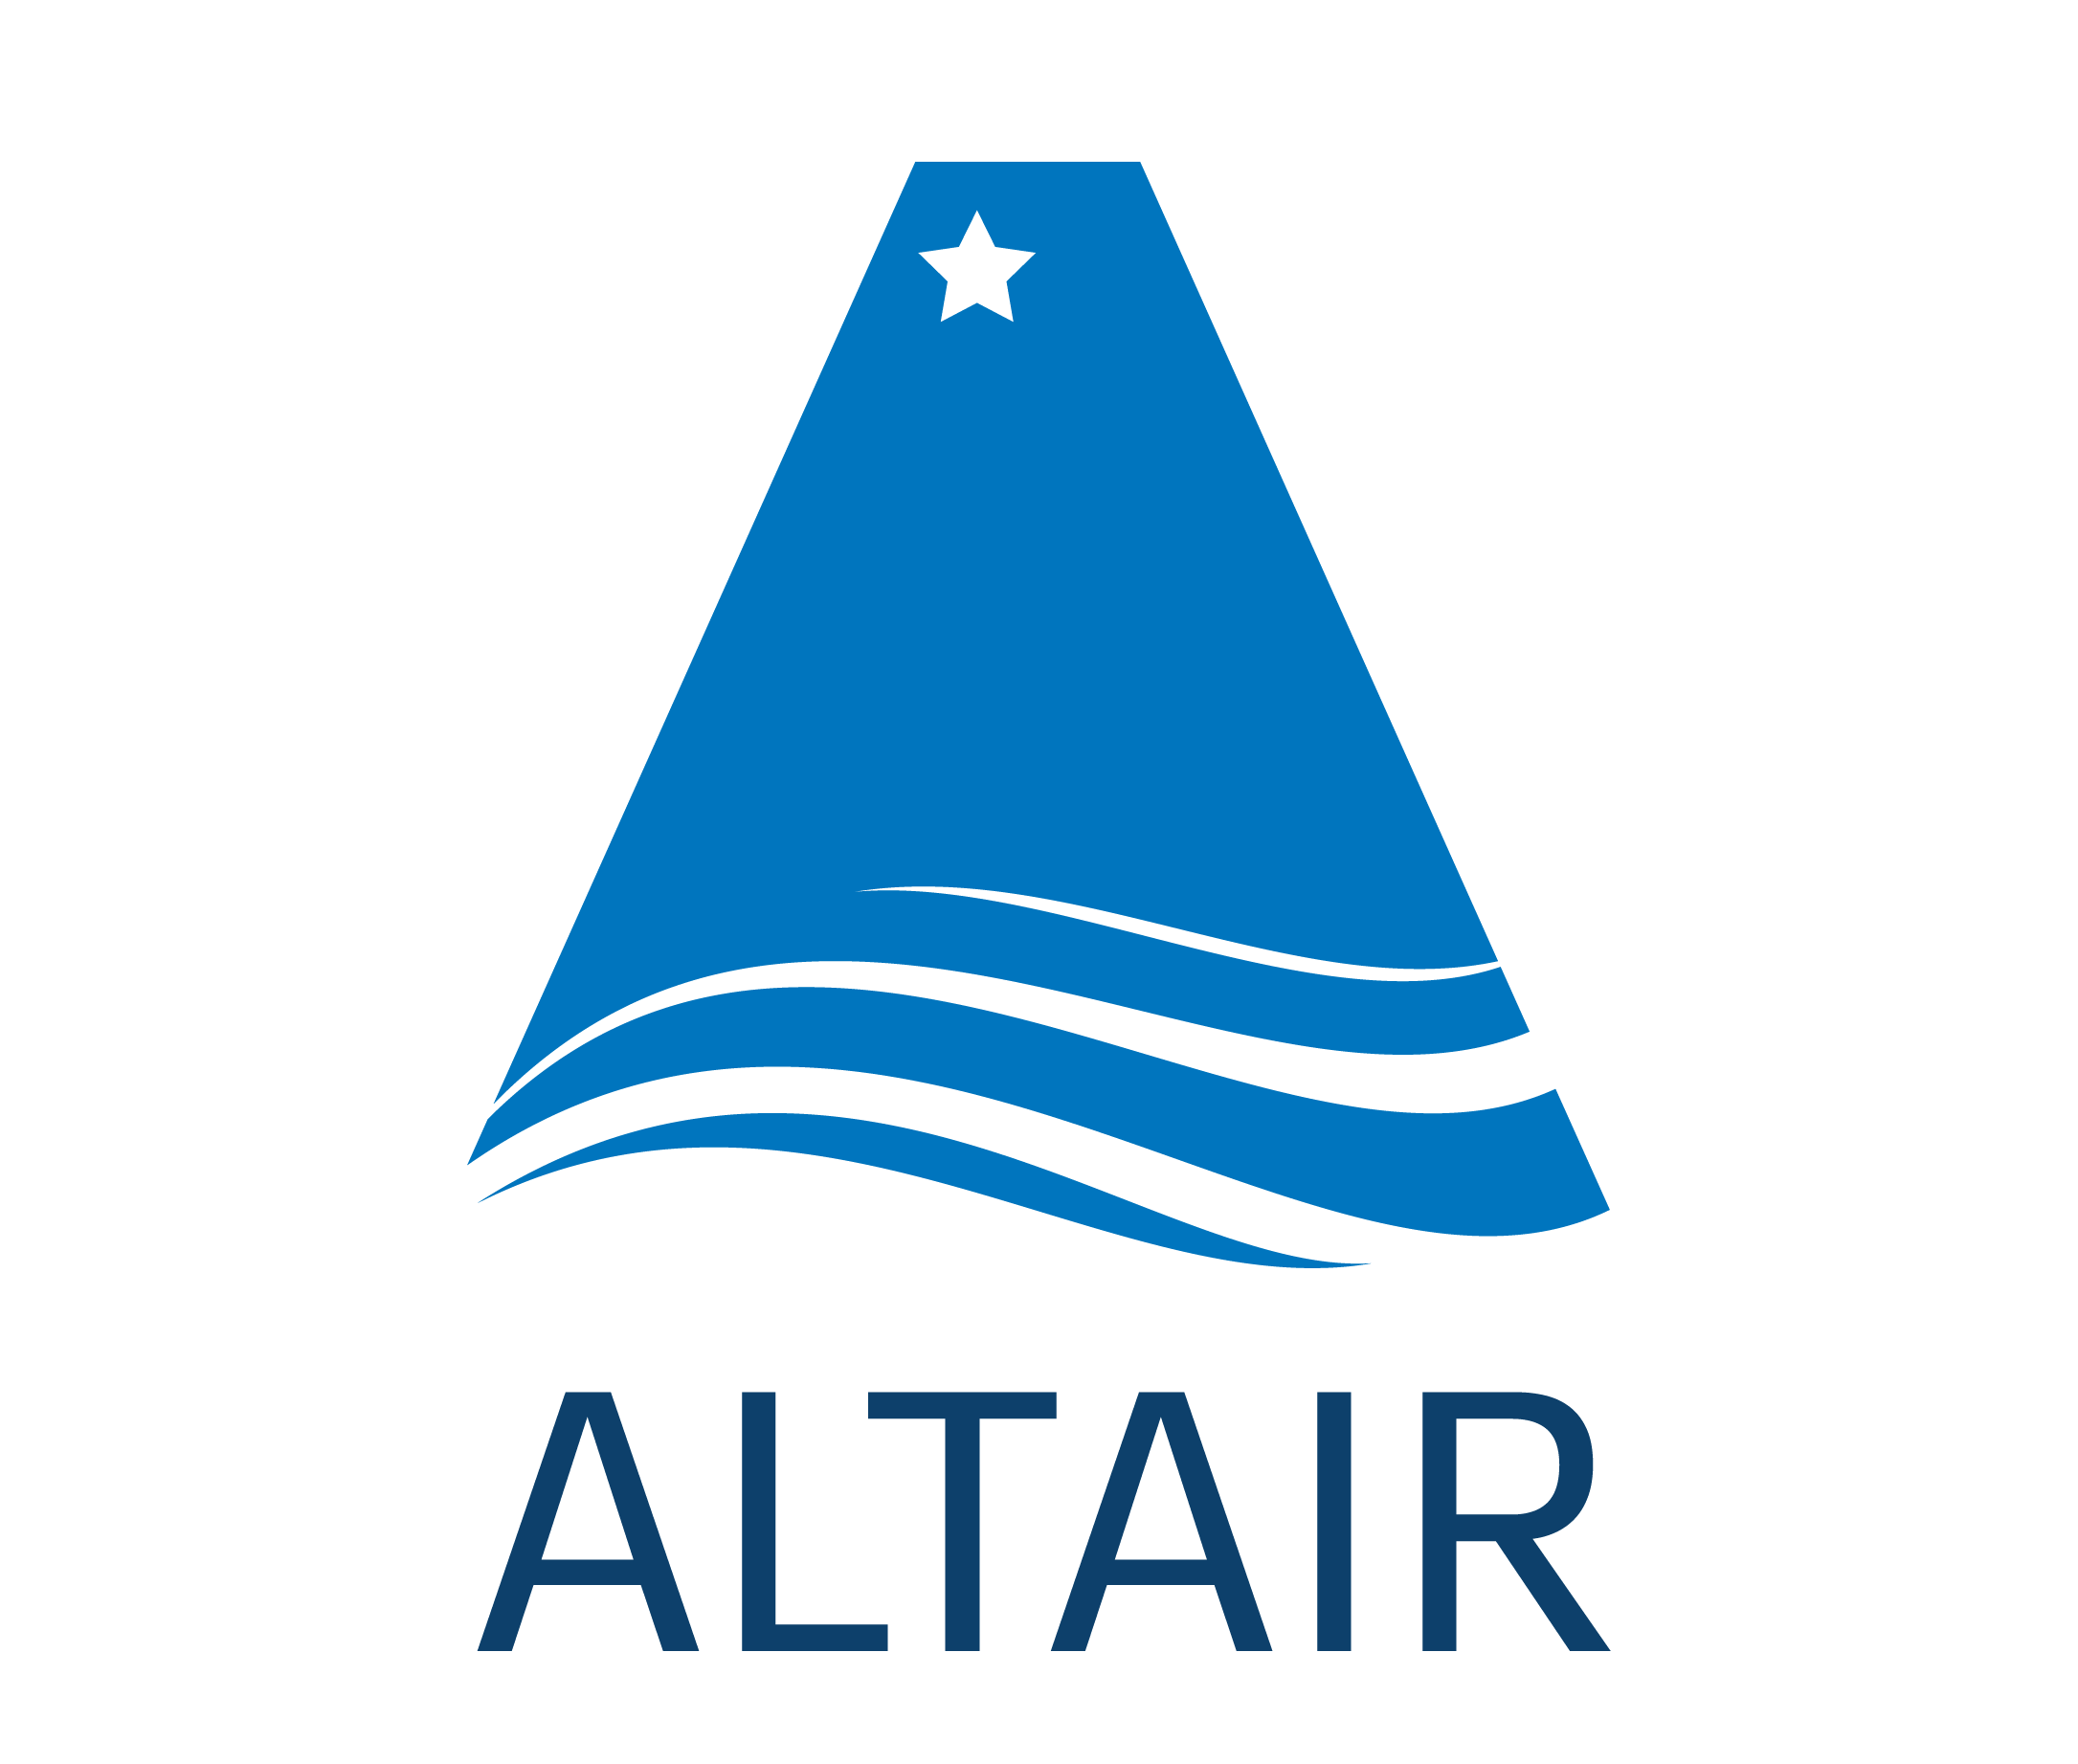 ALTAIR S.A.